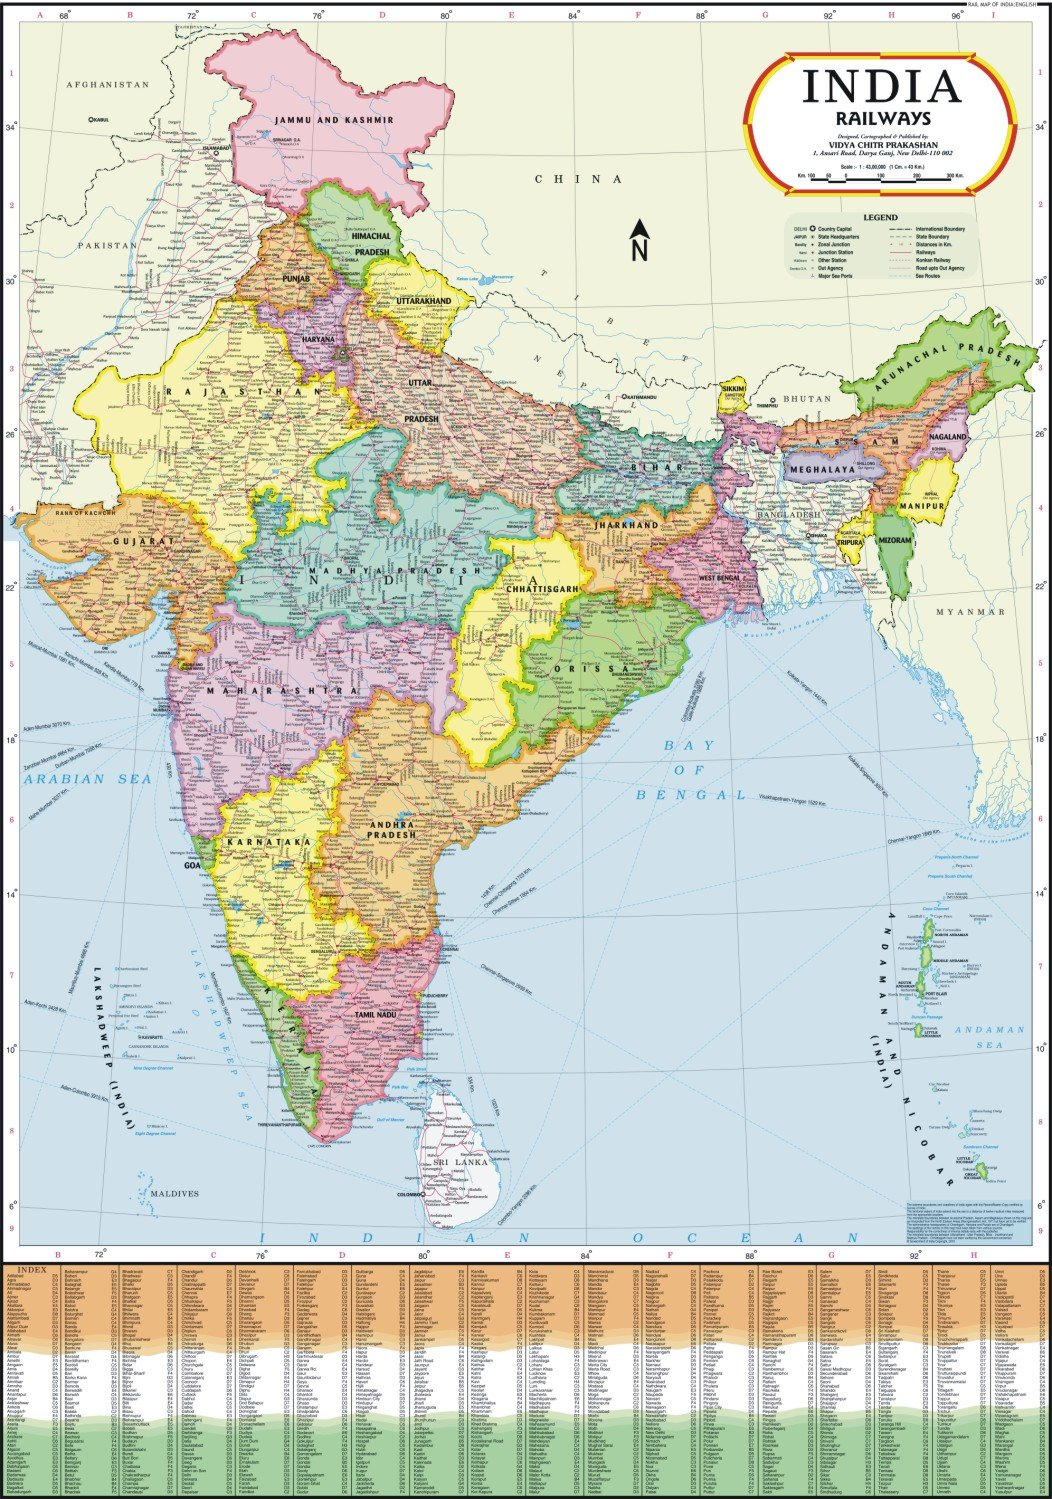 Railway Map Of India.Buy India Railways Map Book Online At Low Prices In India India